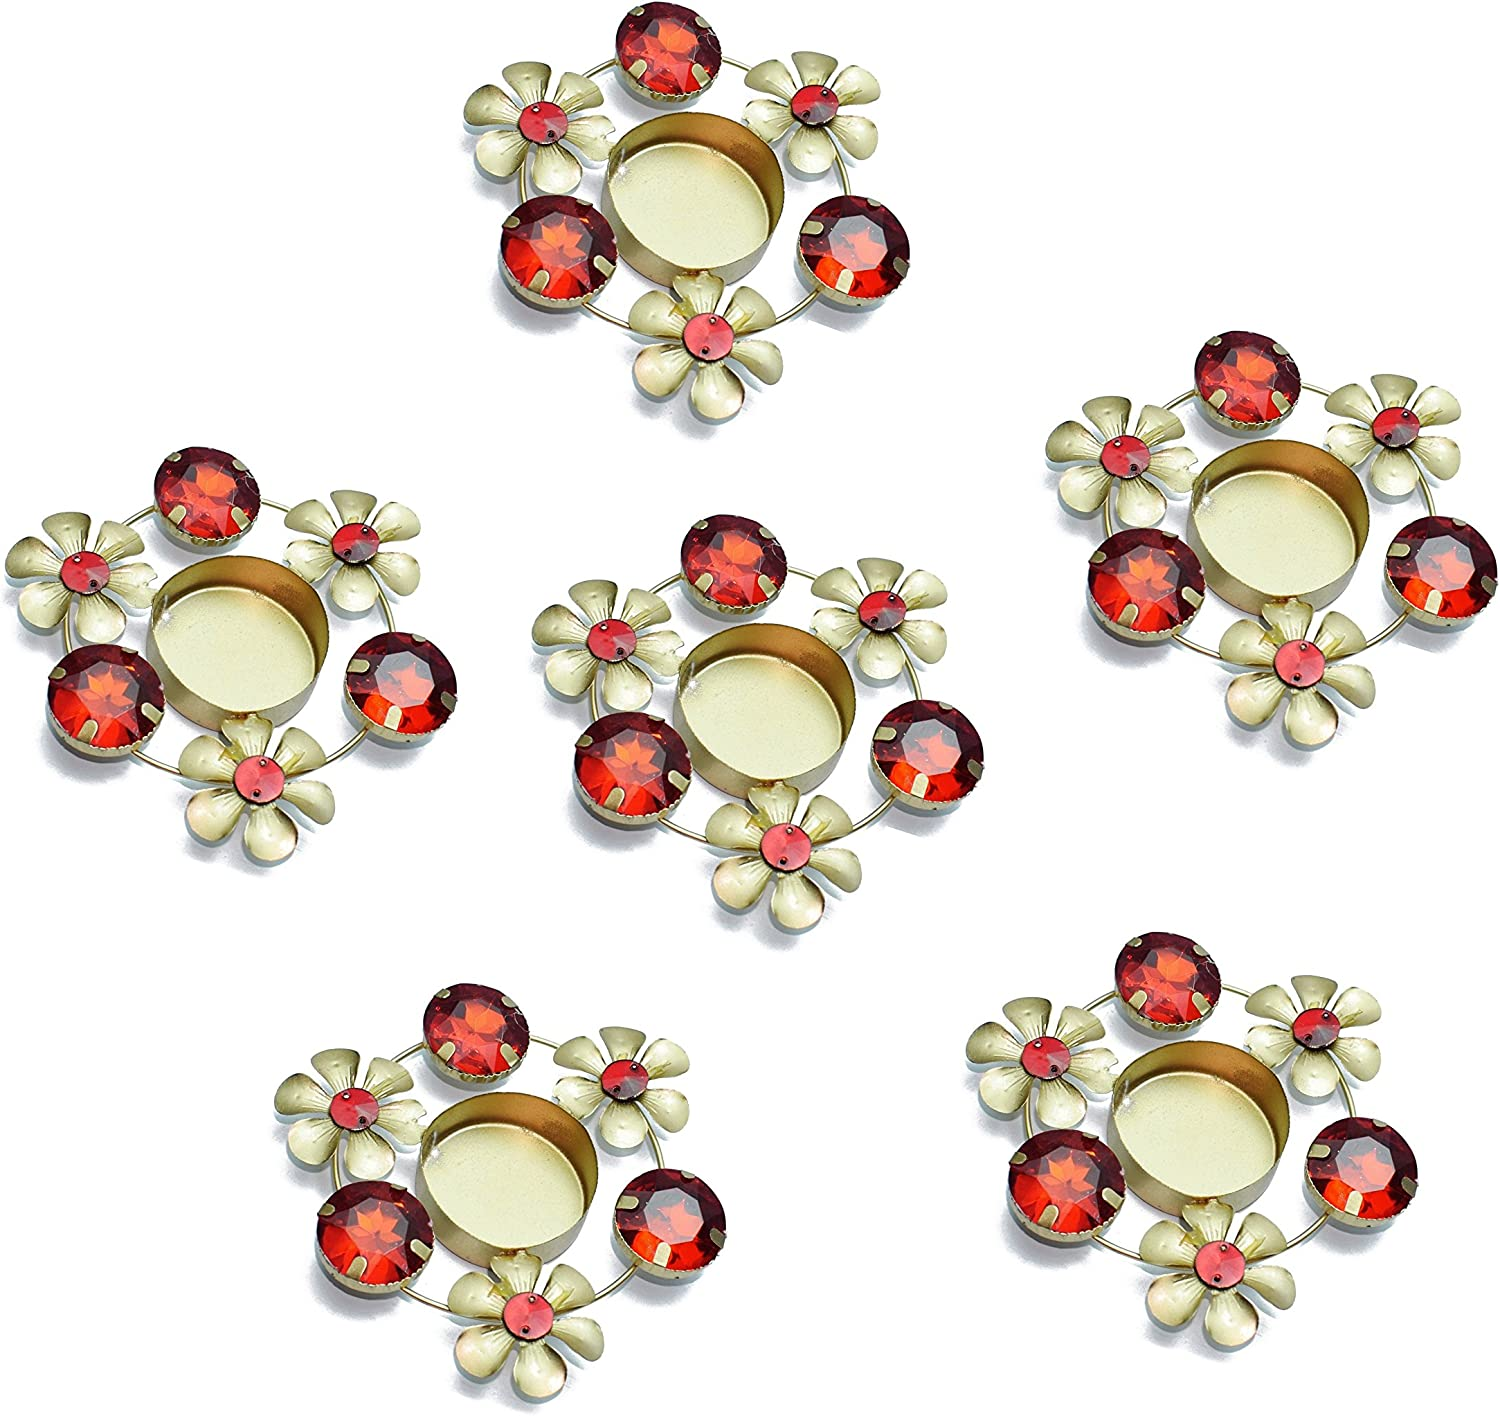 Set of 6 pc Diwali Diya Gift / Decoration Beautiful Candle Tea Light Holder with Red Stones in Random Foil Paint. Diwali Diya Oil lamp / Christmas Decoration..Indian Gift Items..